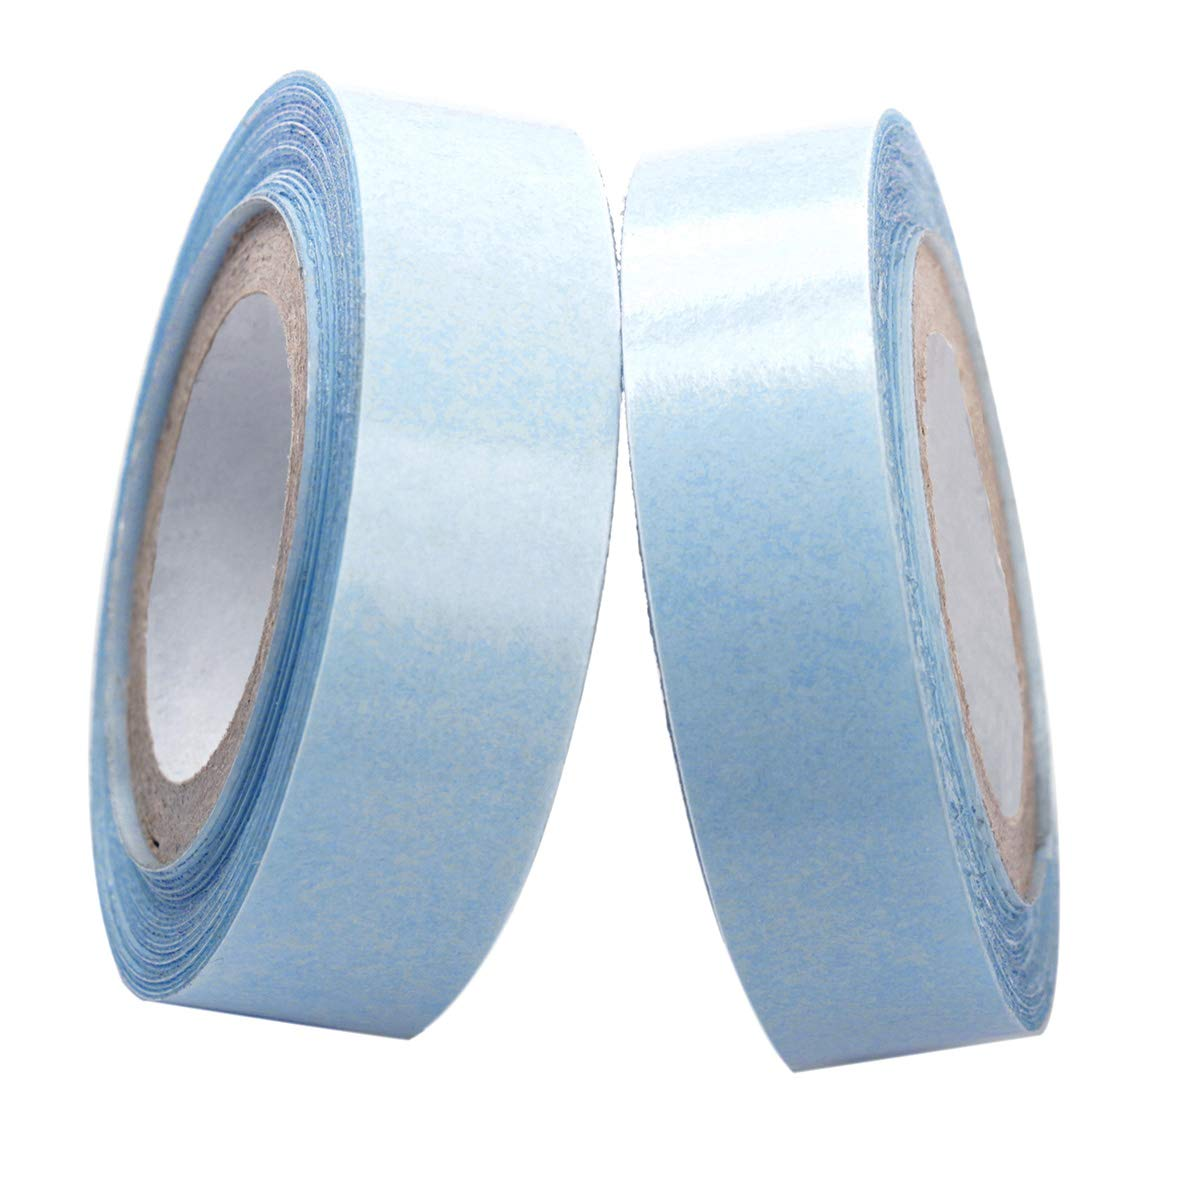 0.85cm x 3 Yards Hair Replacement Strong Adhesive Lace Front Wig Hair Support Tape, Double-Sided Water-Proof Invisible Tape 2 Rolls/Pack For Wigs/Toupees/Skin Weft Hair Extensions-Blue Color